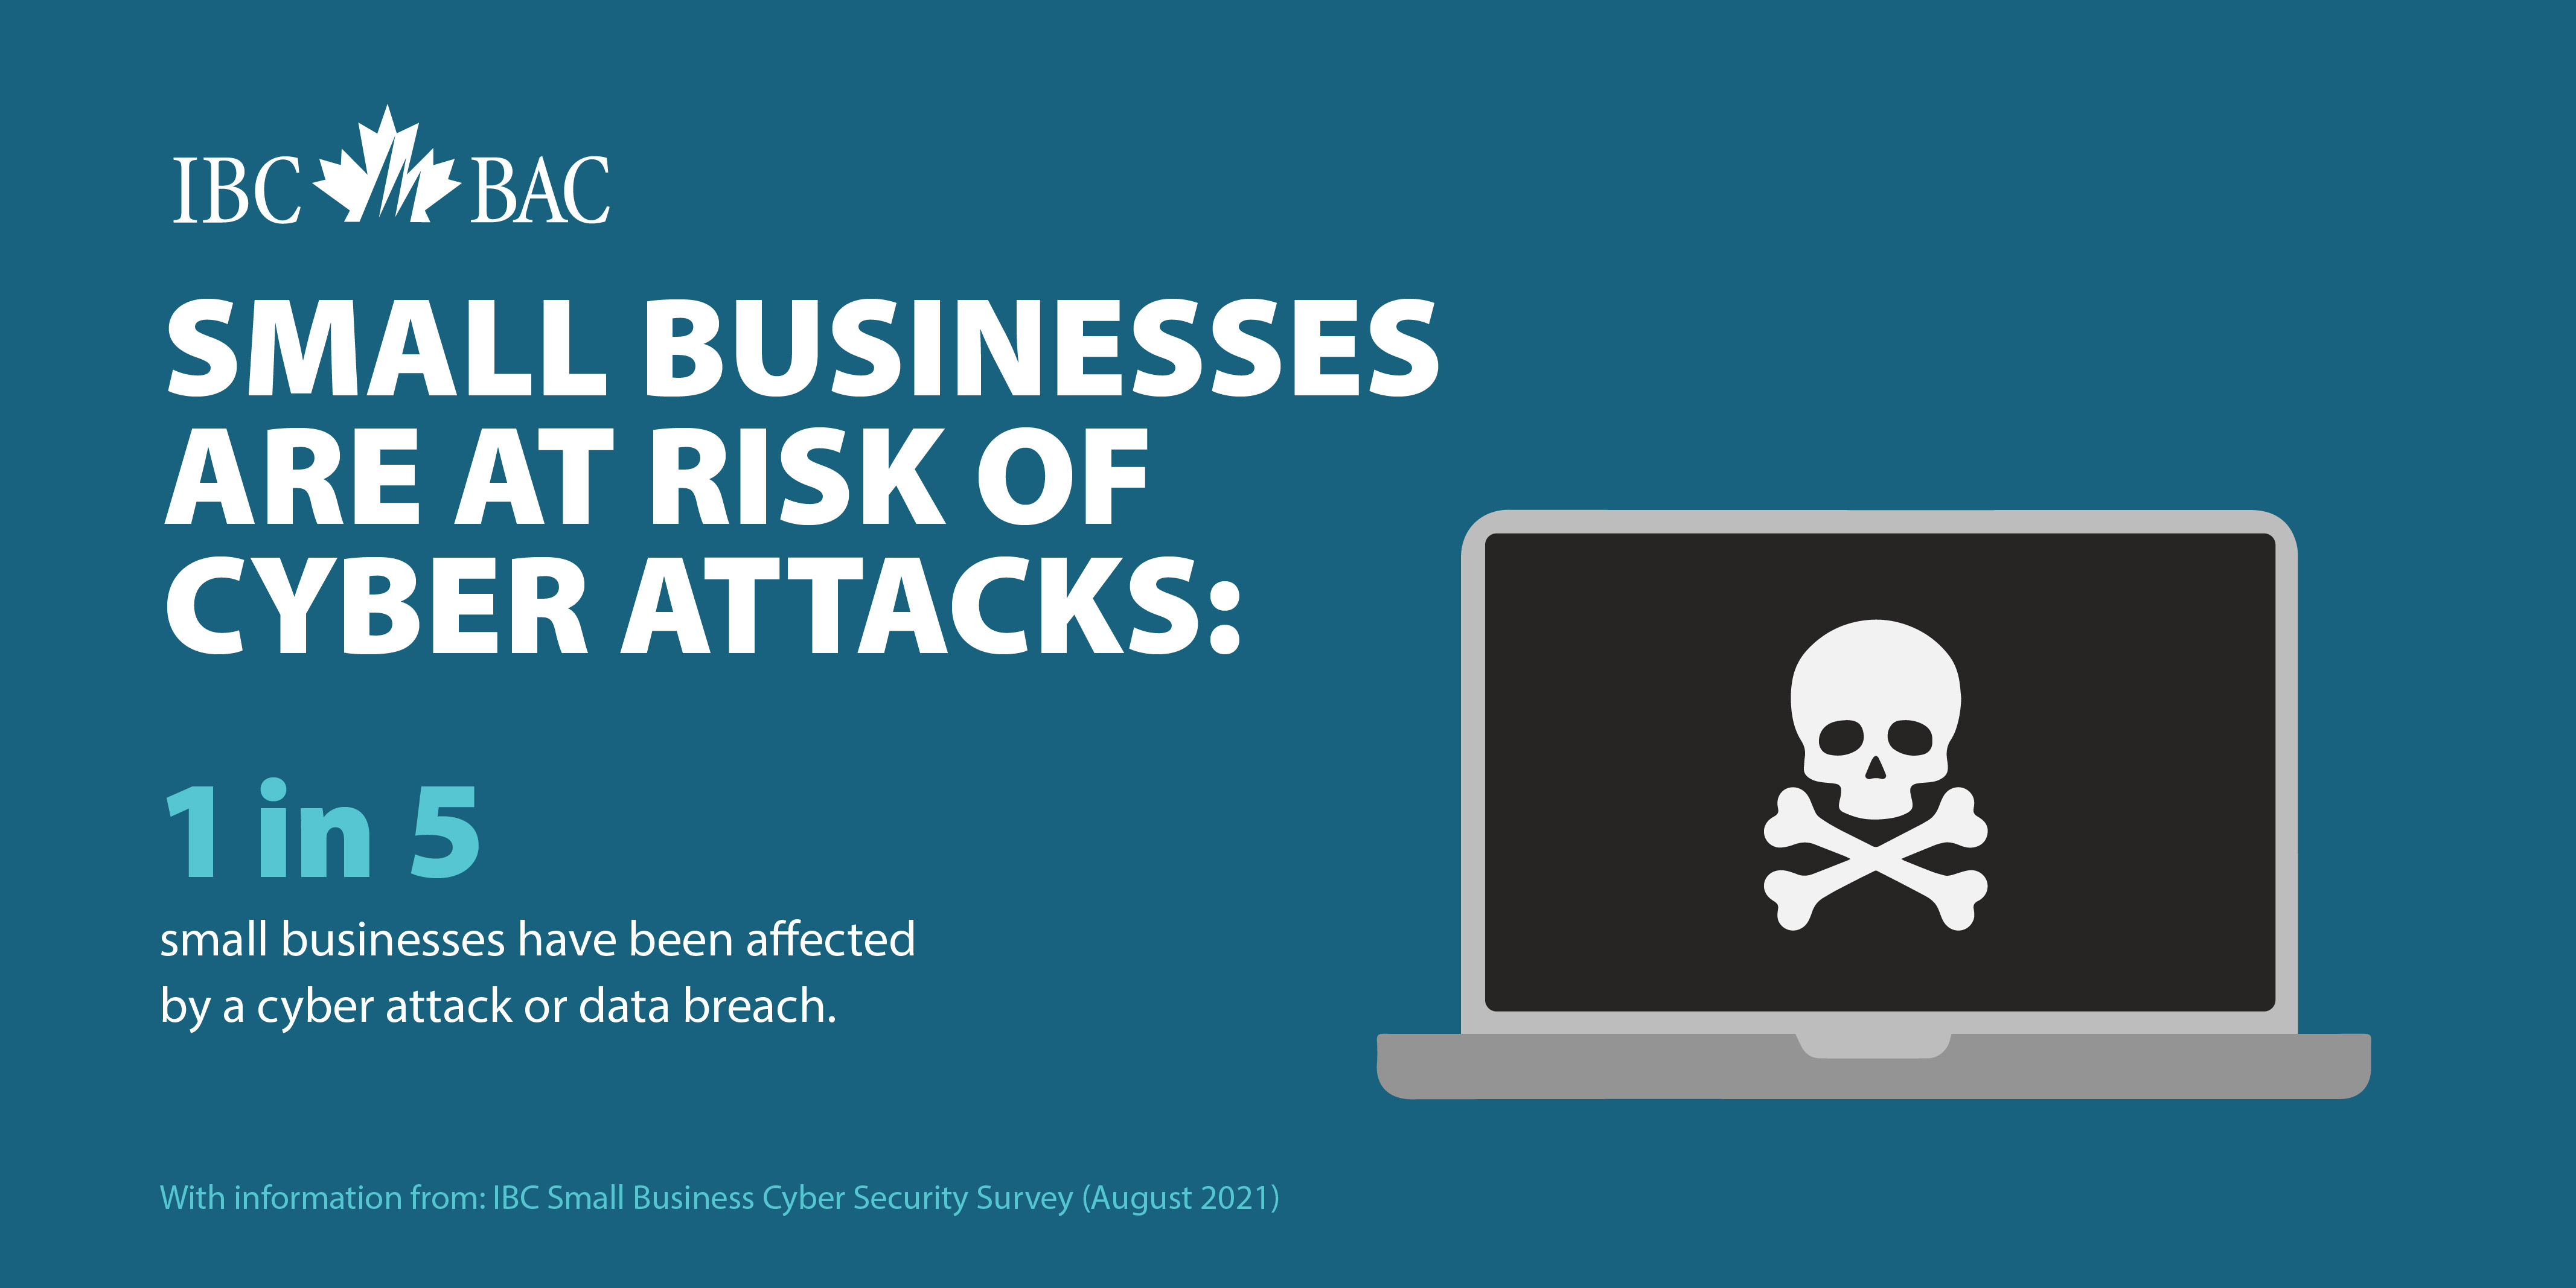 Small businesses are at risk of cyber attacks